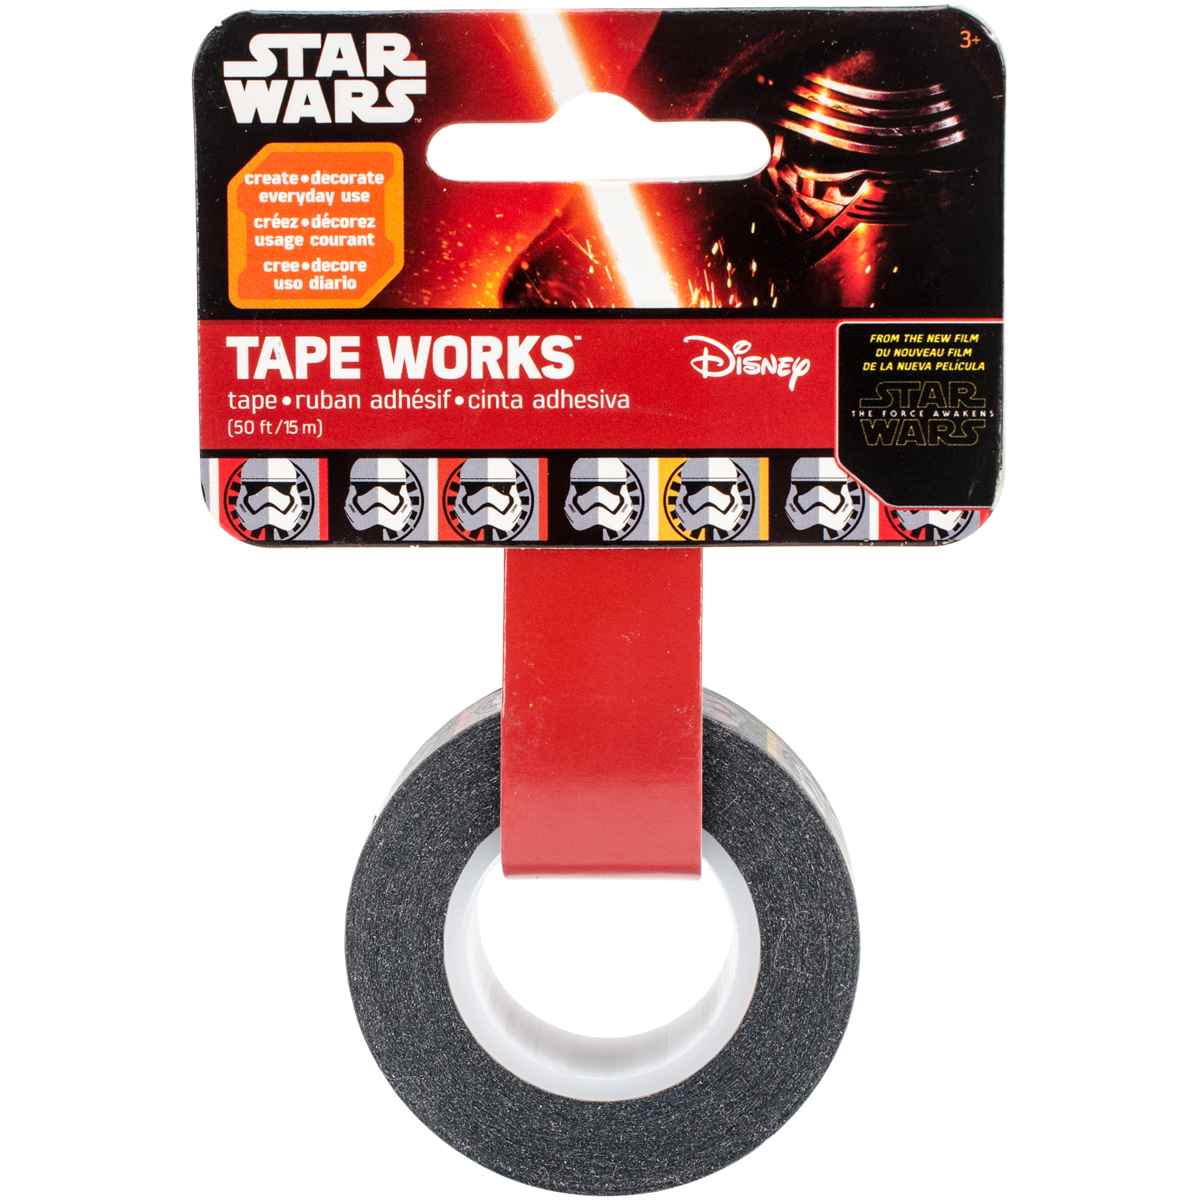 Tape Works Tape .5 Inch X 50-Star Wars 7